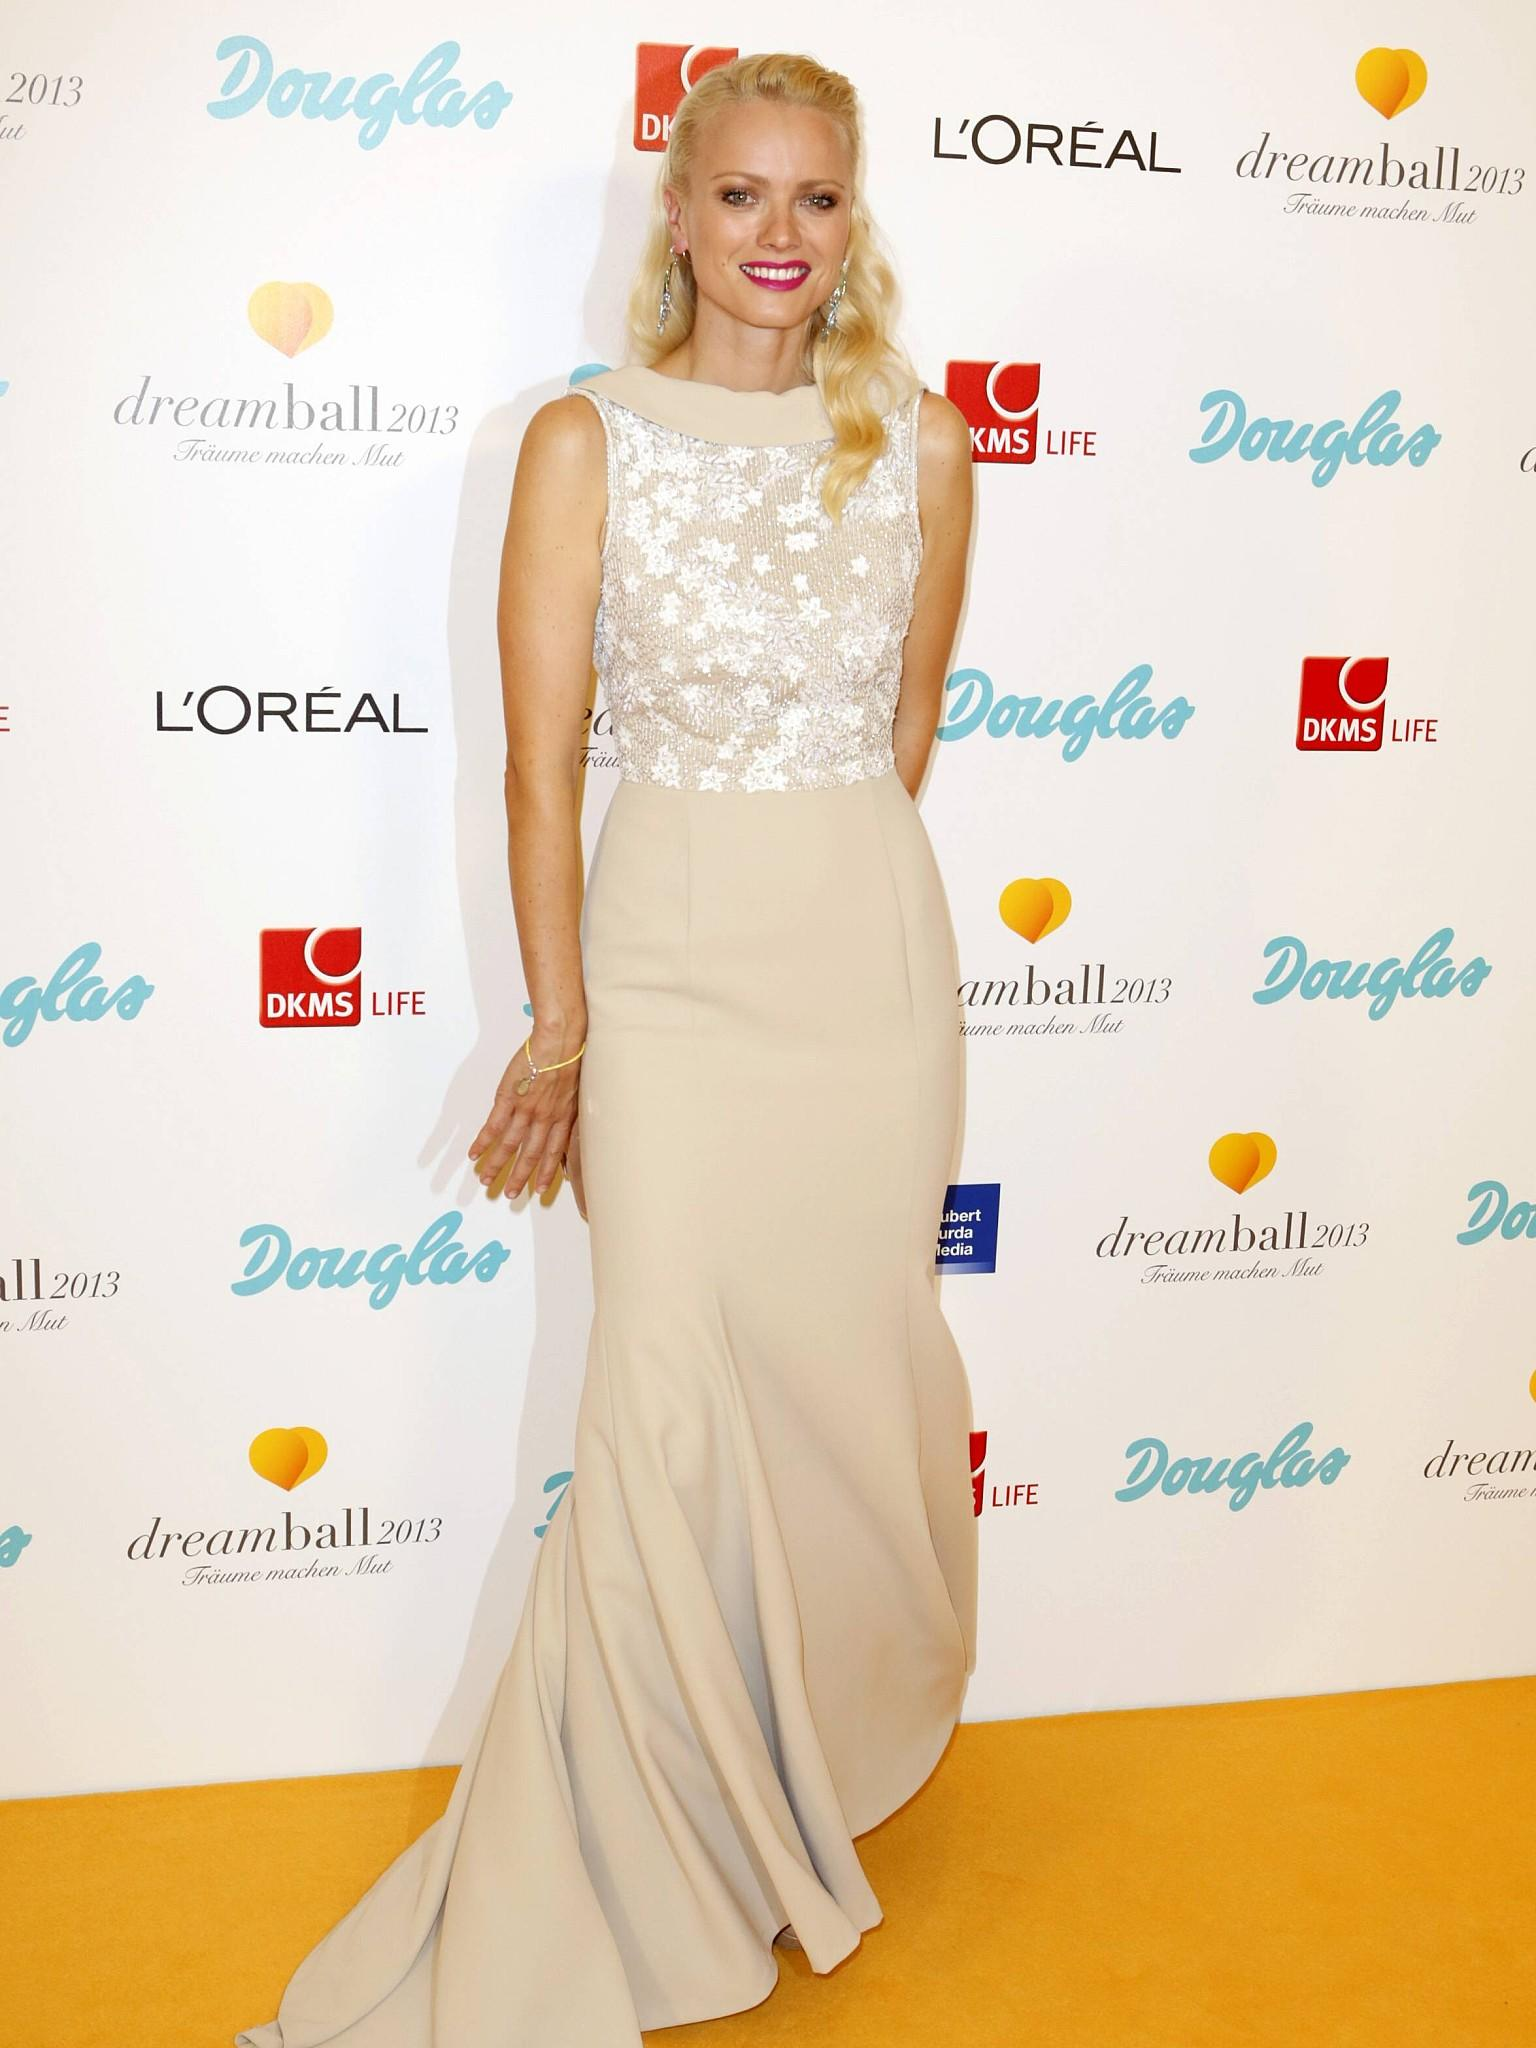 DKMS Dreamball 2013 Galerie